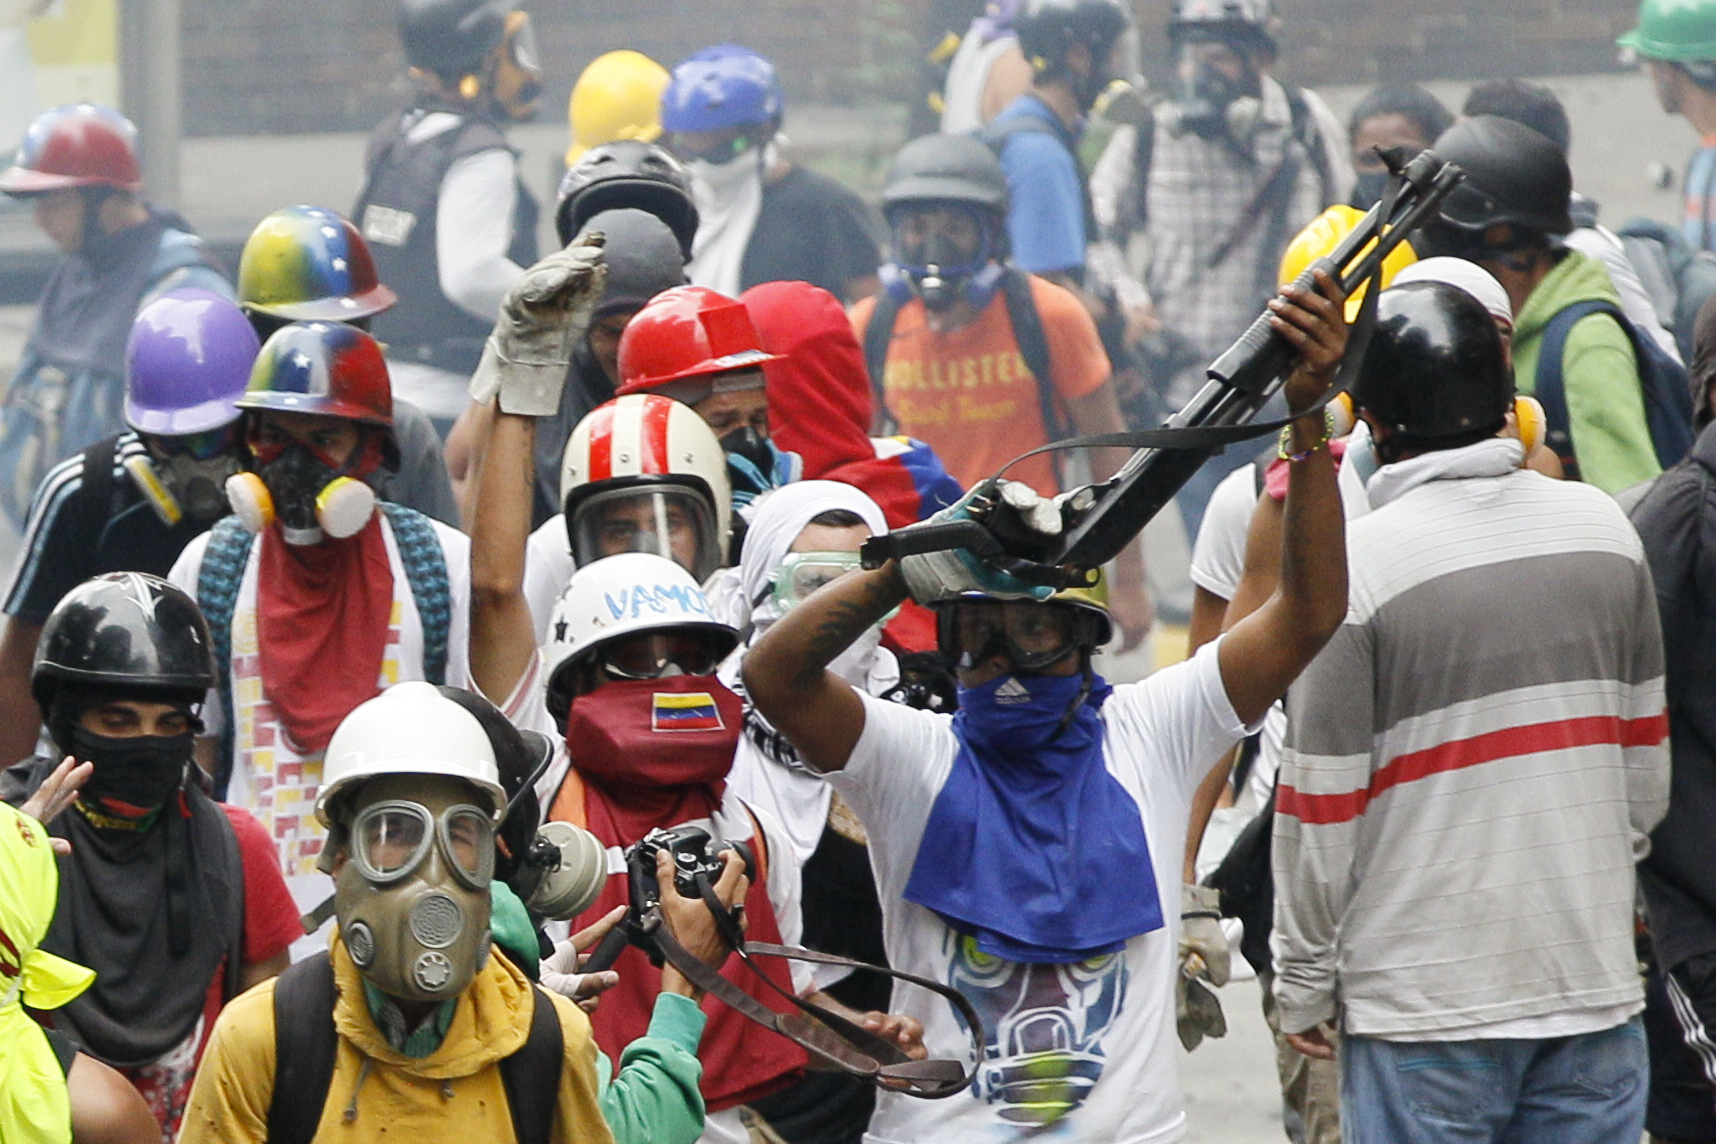 An anti-government demonstrator shows a shotgun taken from security forces during clashes in Caracas, Venezuela, May 8, 2017.